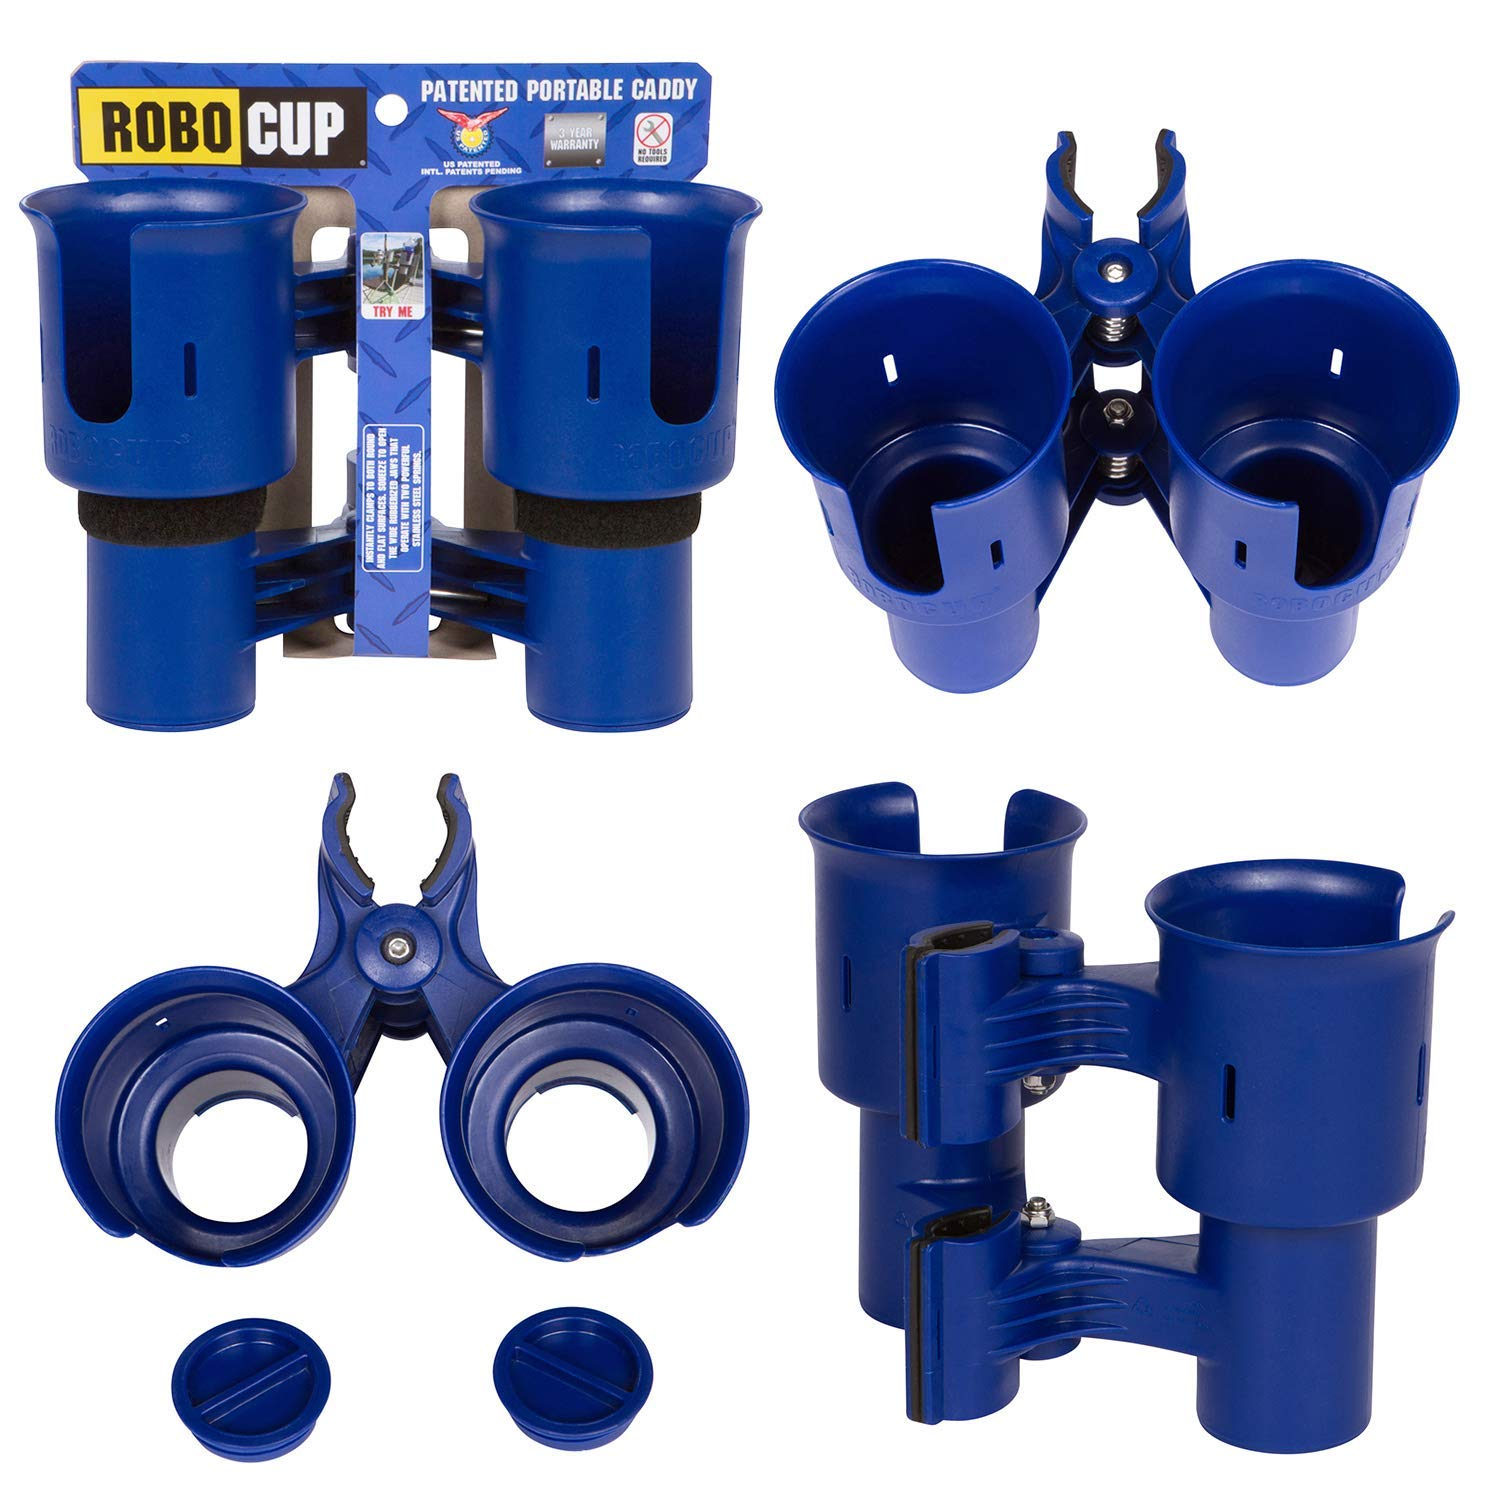 ROBOCUP, Navy, Upgraded Version, Best Cup Holder for Drinks, Fishing Rod/Pole, Boat, Beach Chair, Golf Cart, Wheelchair, Walker, Drum Sticks, Microphone Stand by ROBOCUP